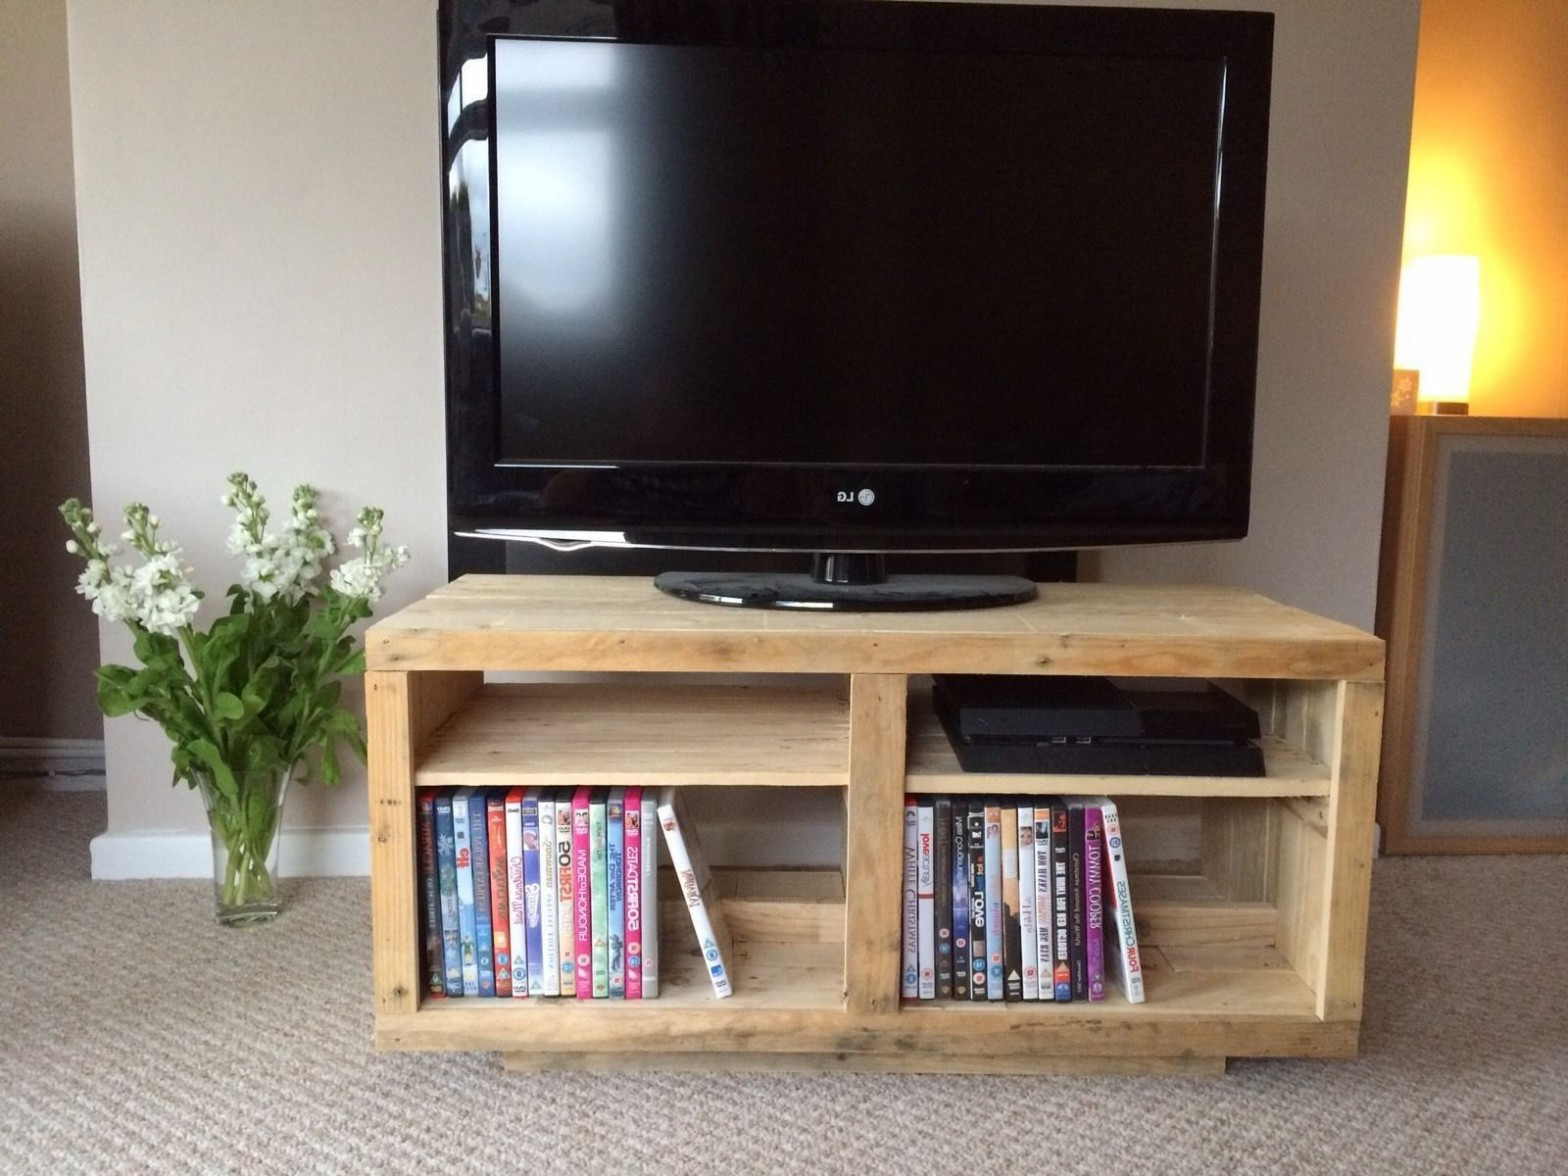 Most Popular Best Of Flat Screen Tv Stand With Bookshelves Lovely How To Make For Oak Tv Stands For Flat Screens (View 15 of 20)